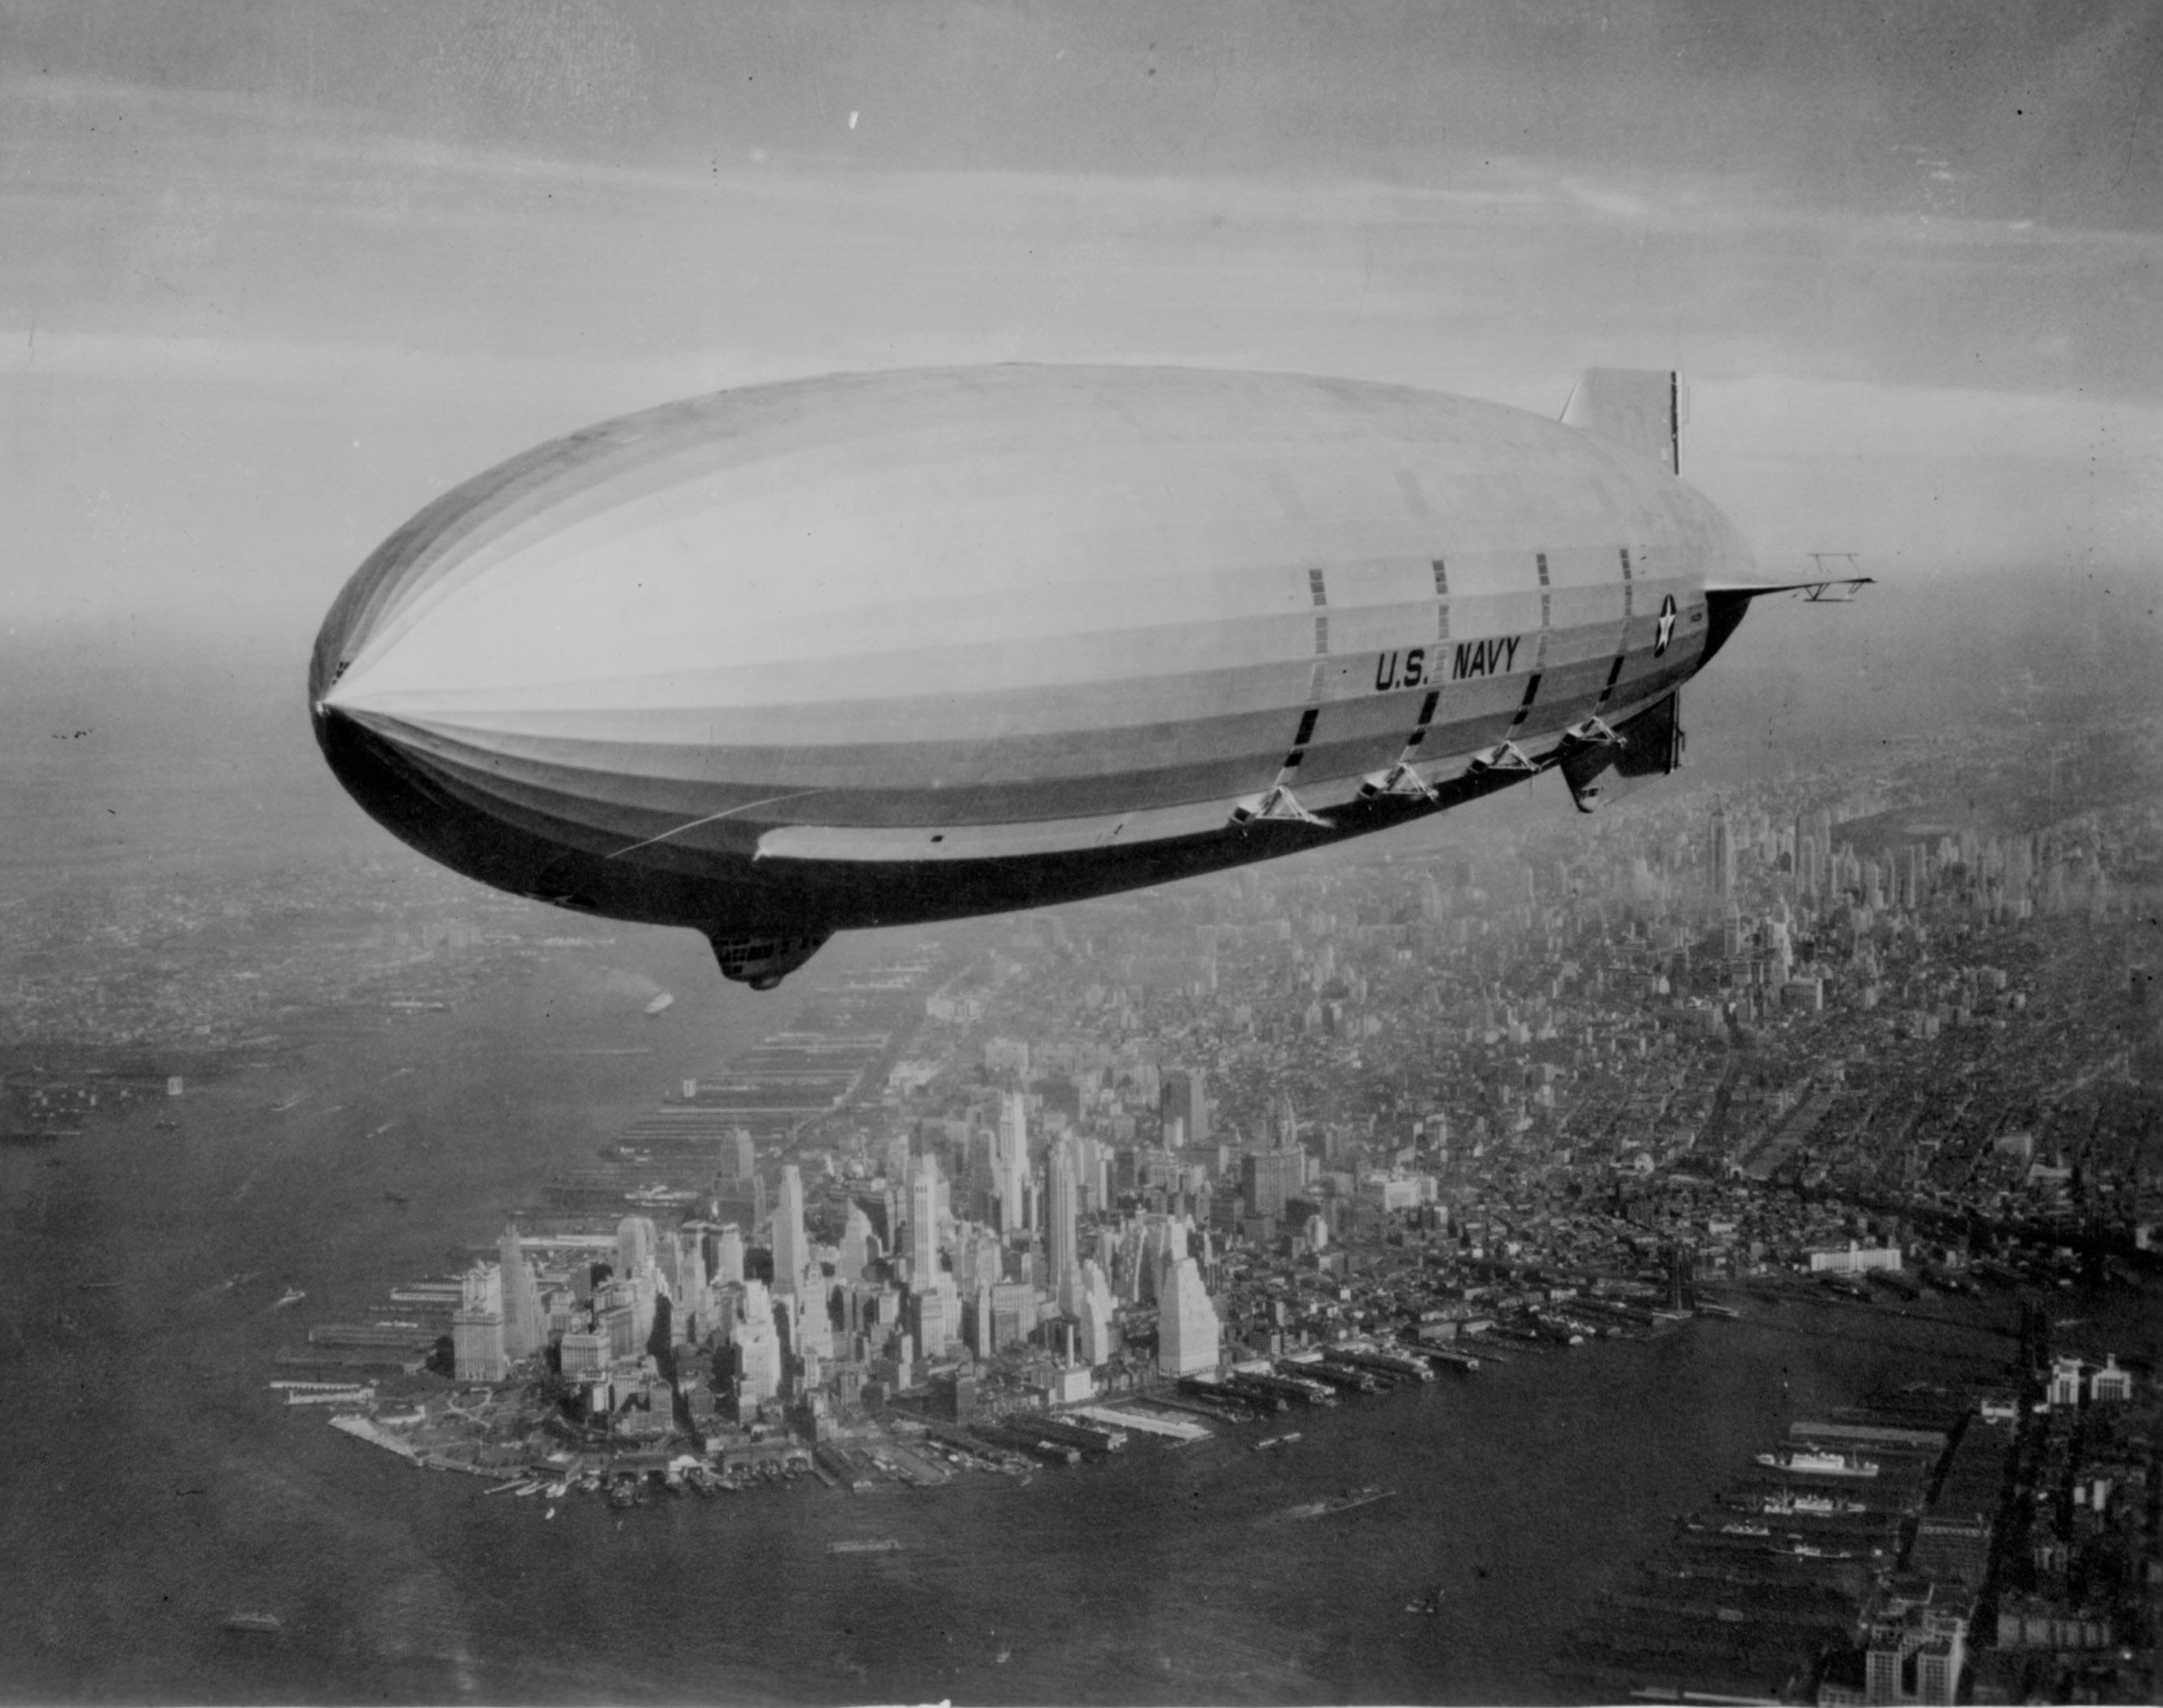 USS Macon (ZRS-5) over New York City in 1933 or 1934.